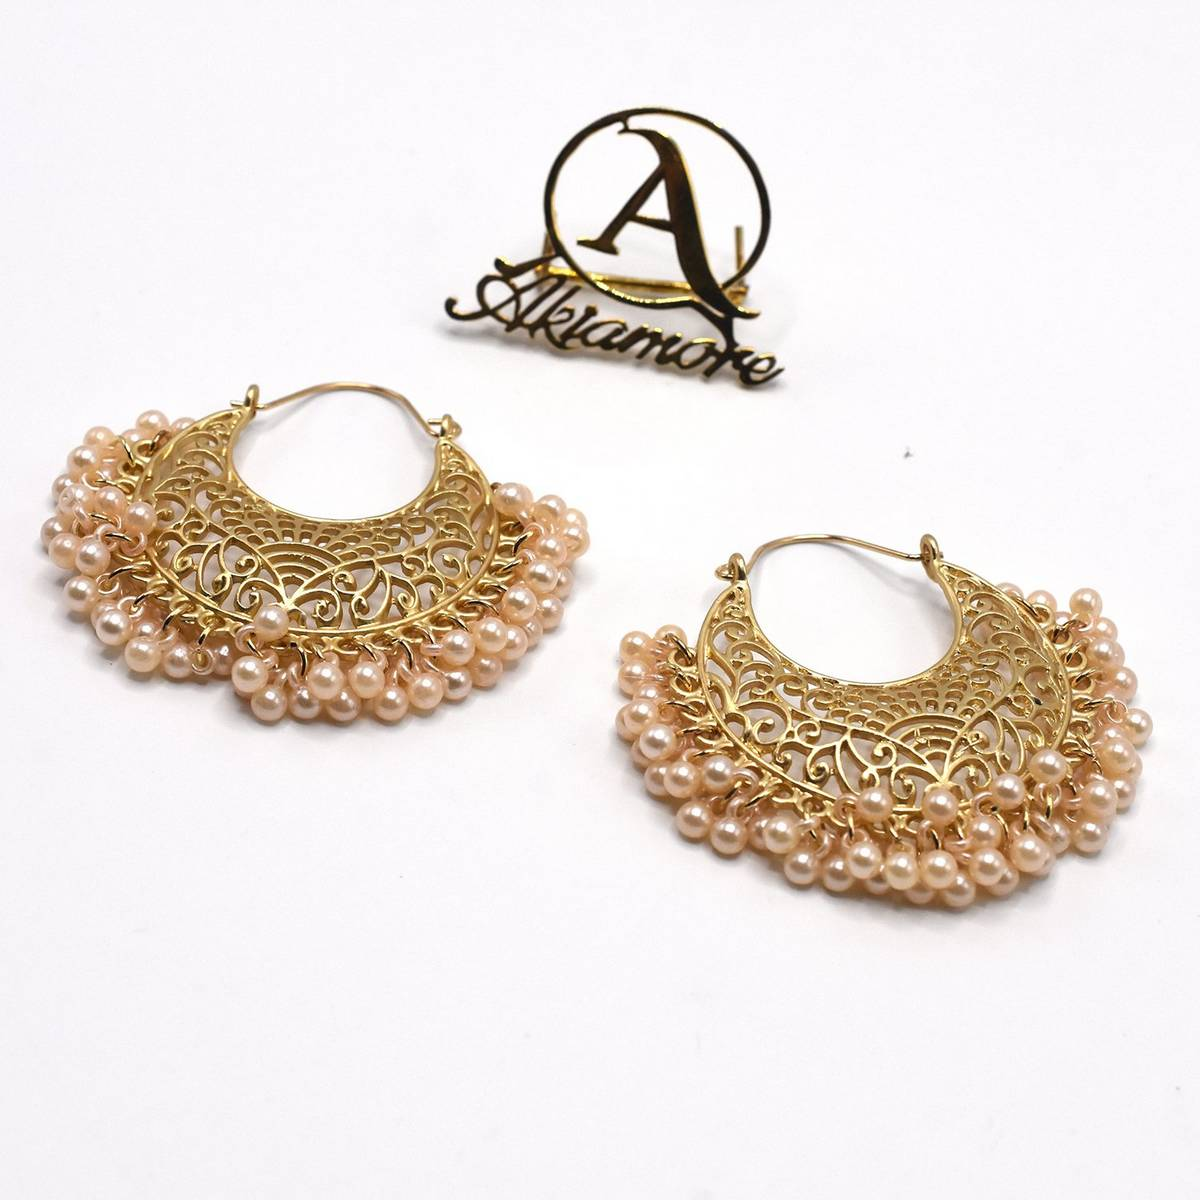 2020 New Indian Gold Handmade Beads Thailand Piercing Earrings Fashion Party Jewelry